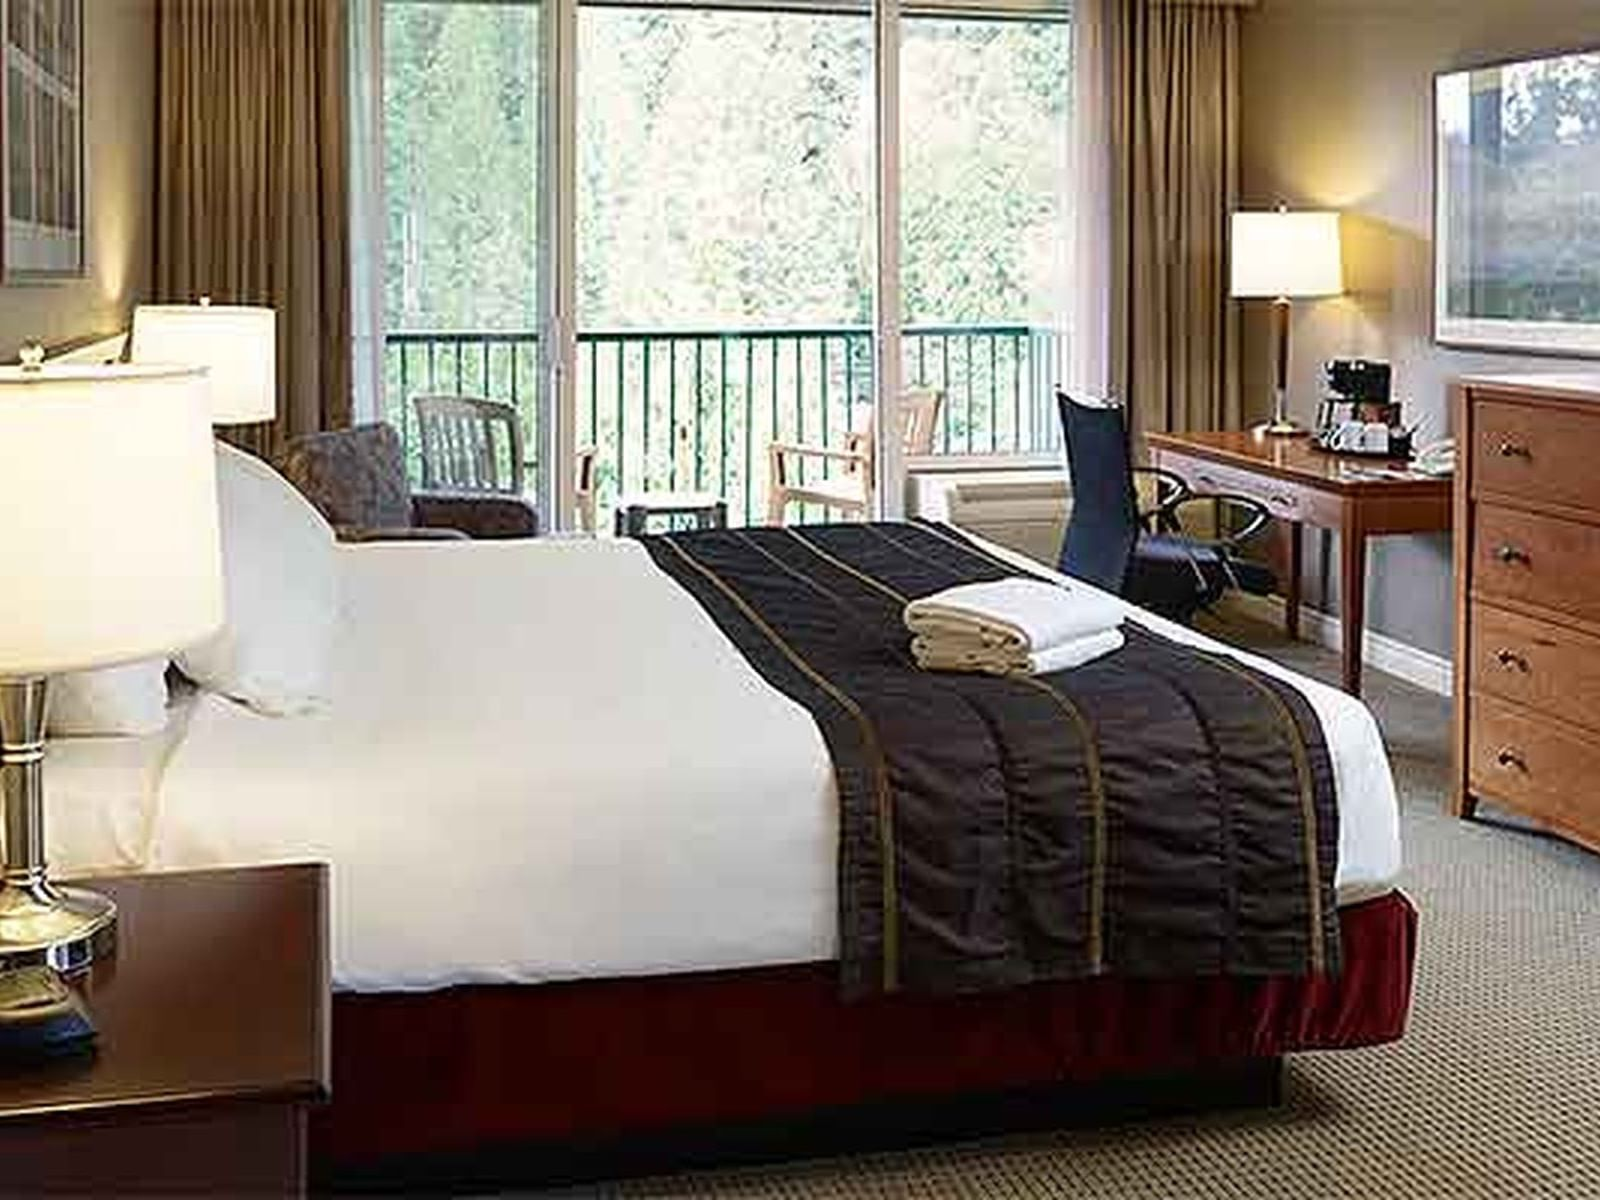 bed in hotel room with balcony